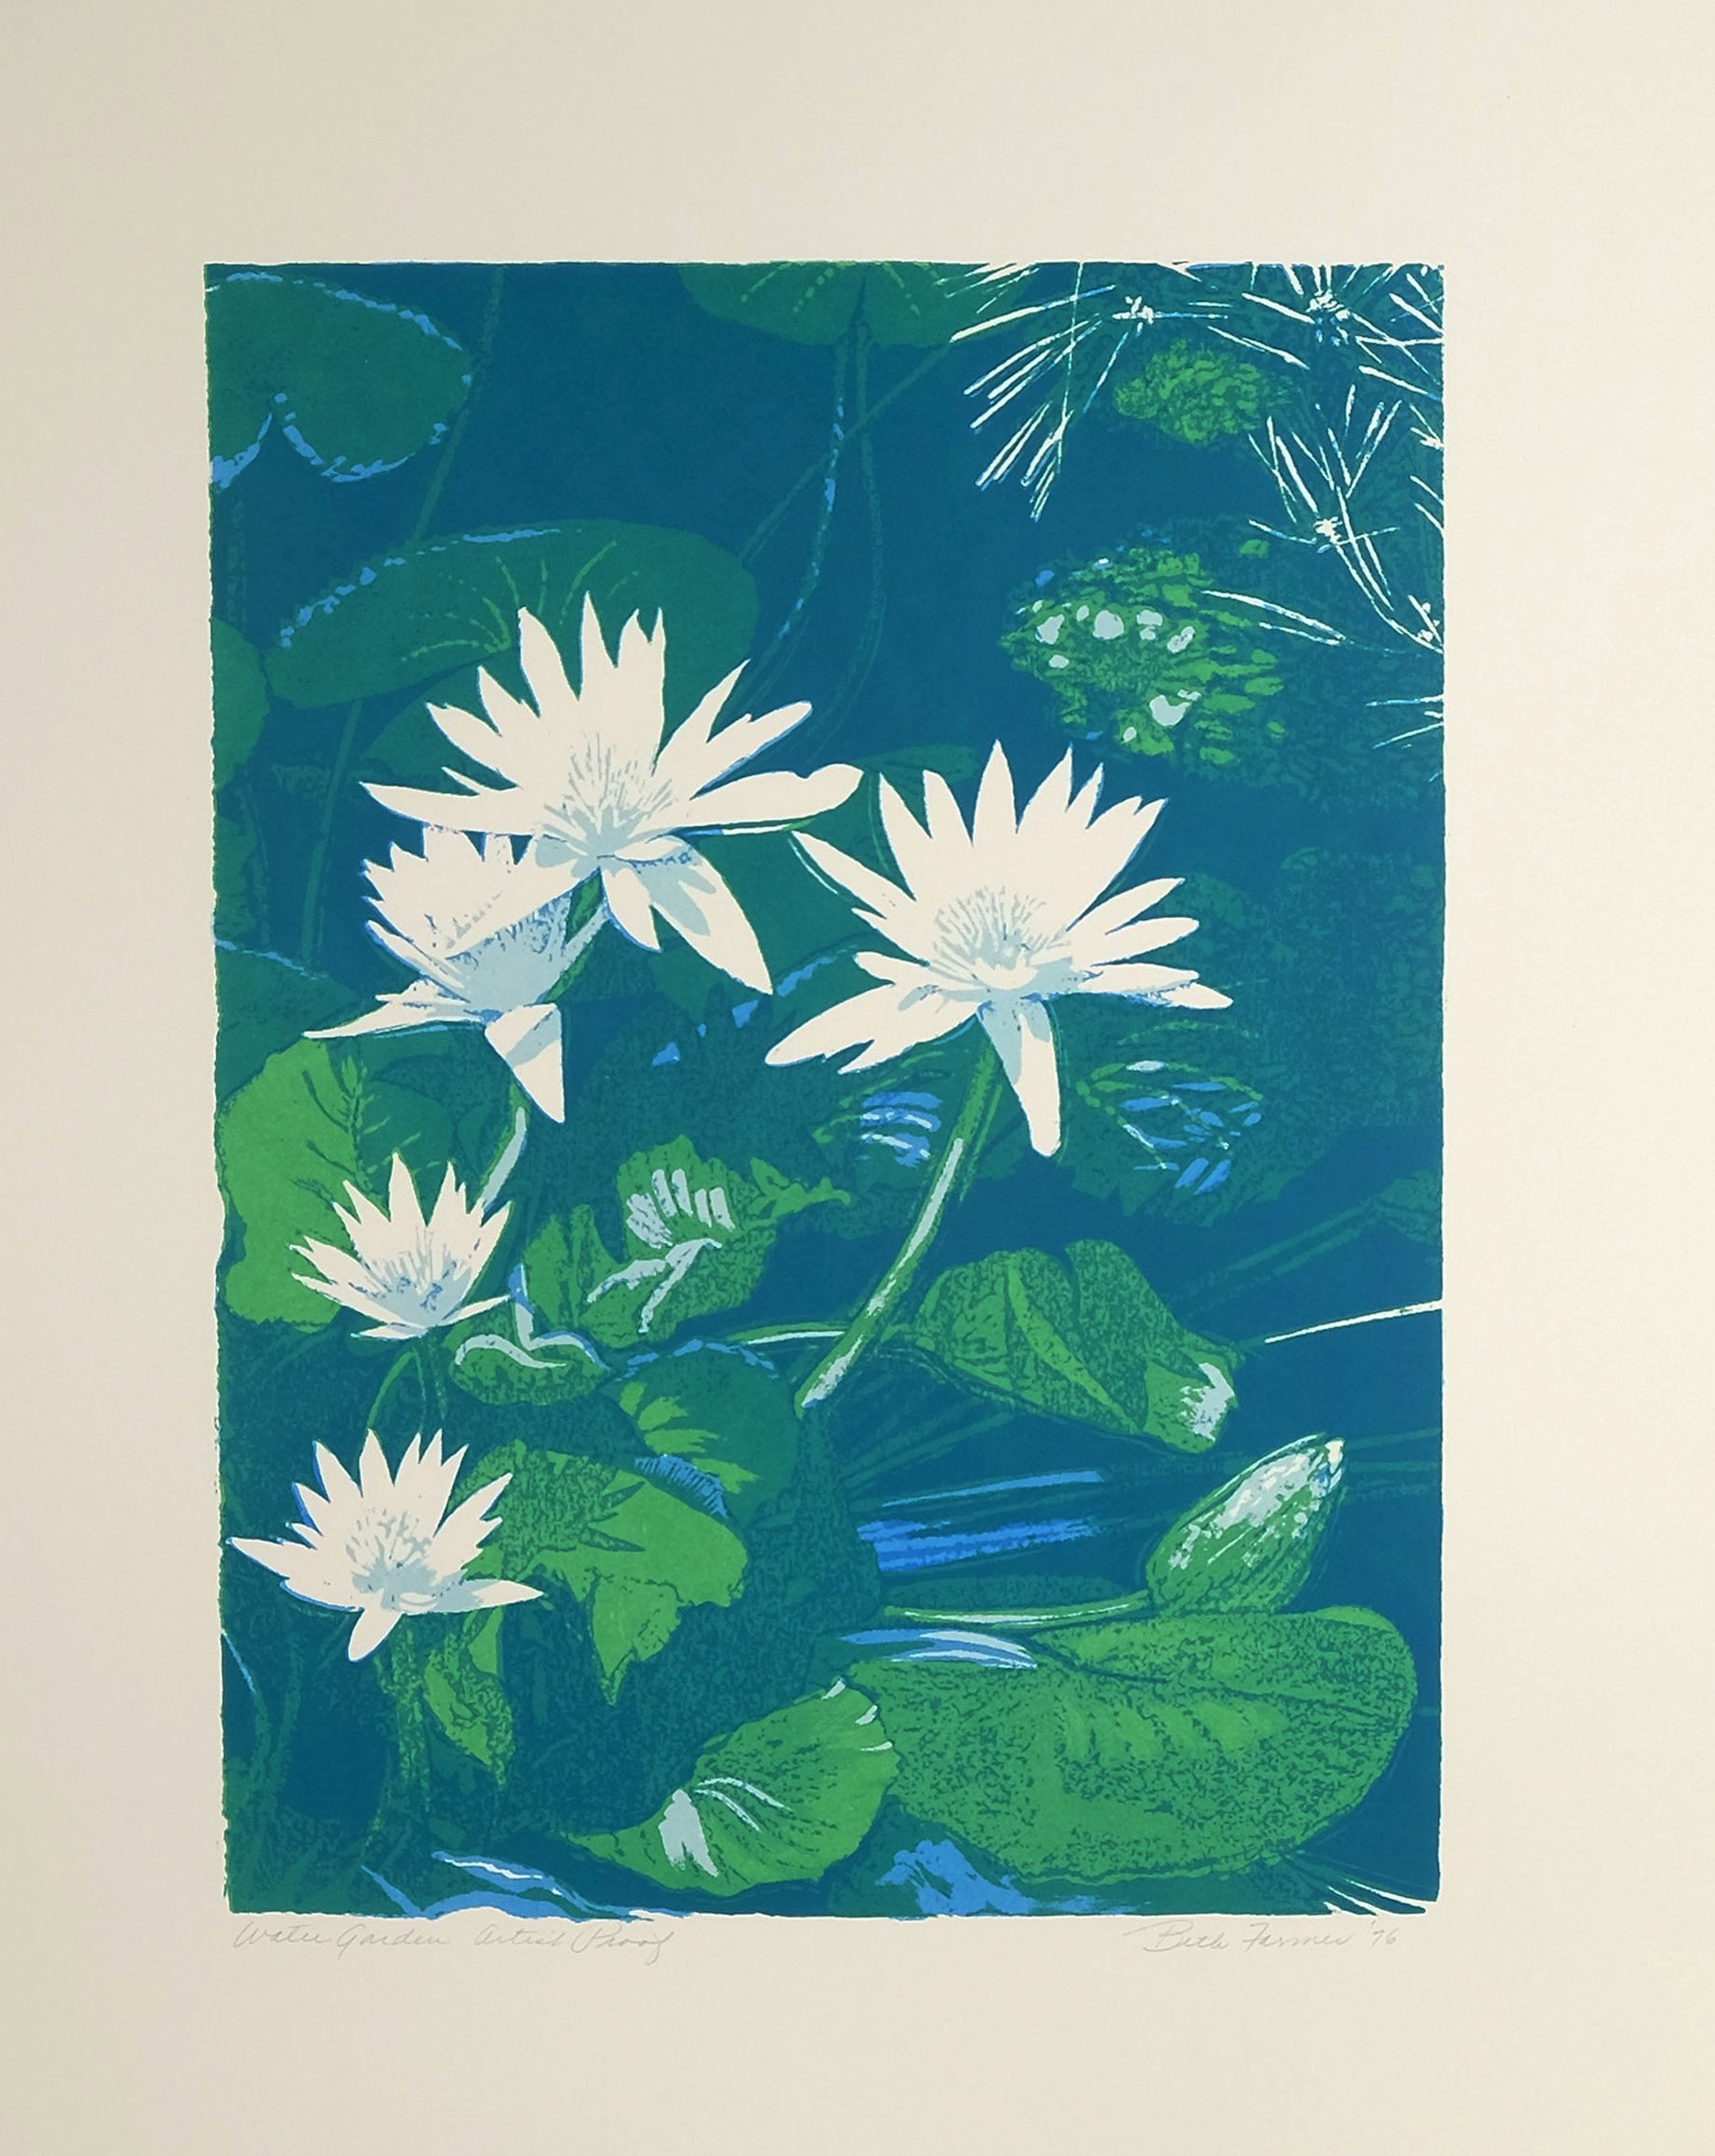 Water Garden, Blue/Green - SOLD OUT